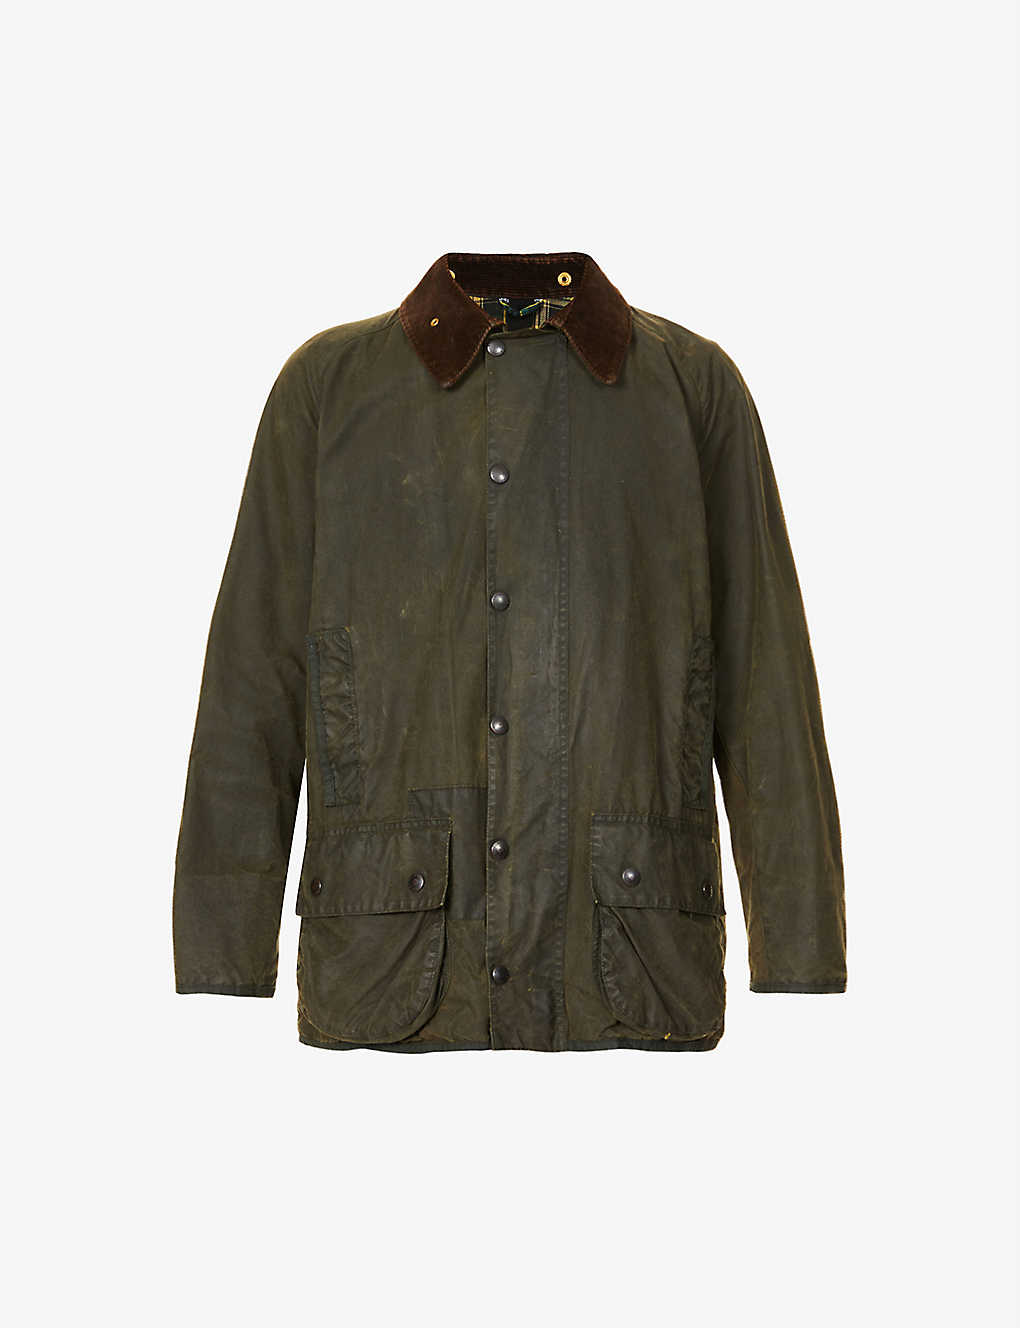 BARBOUR: Re-Loved waxed cotton jacket